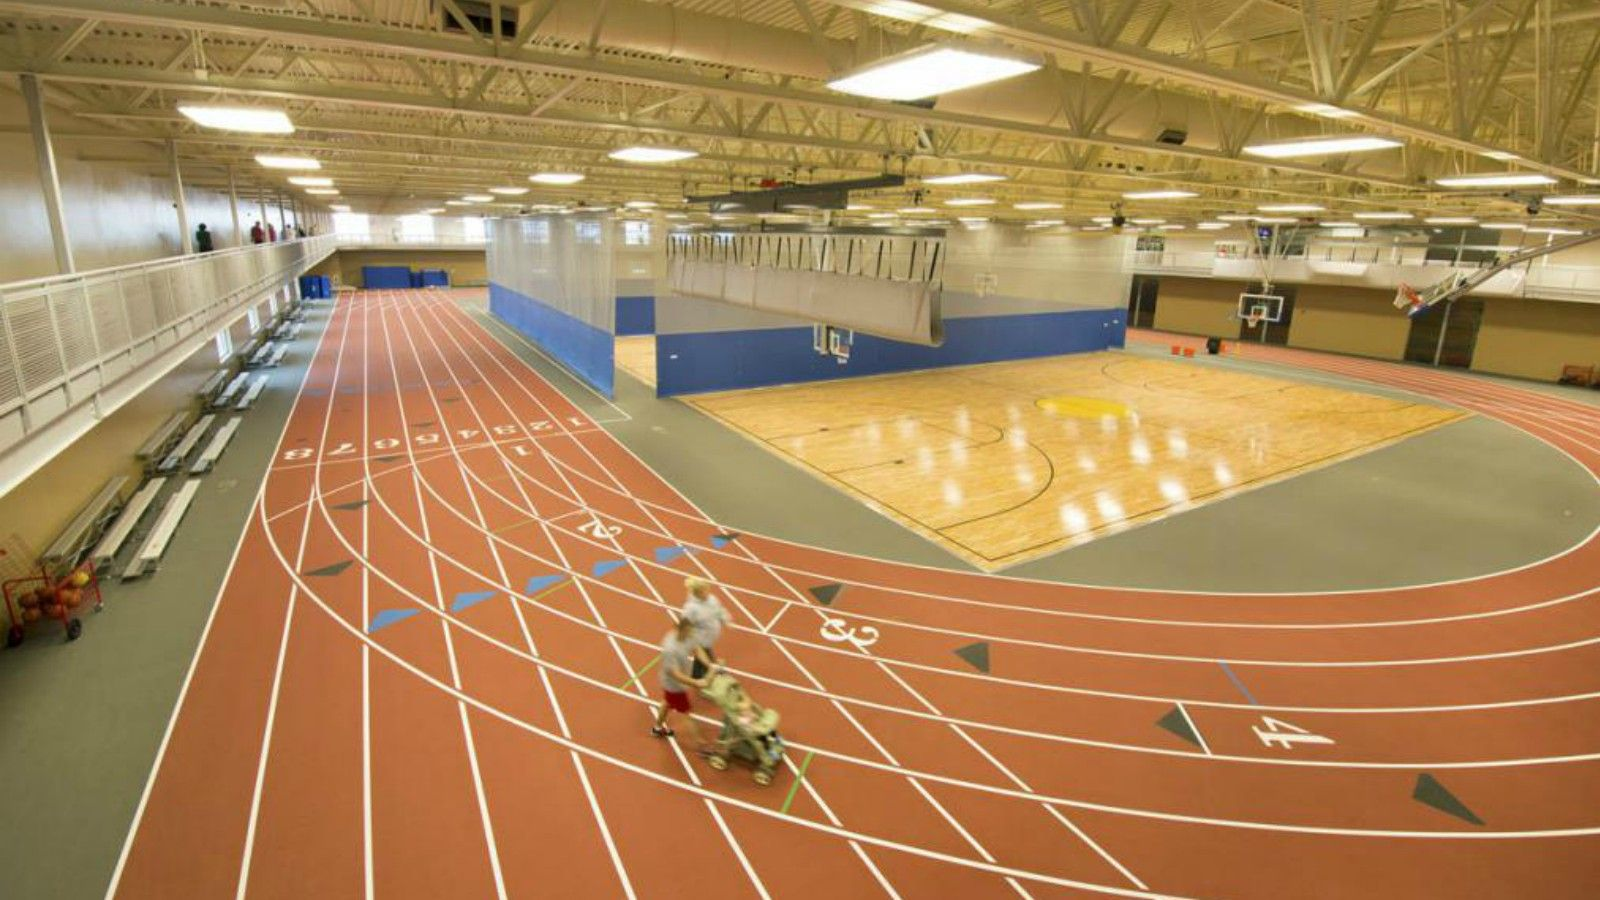 Williston Area Recreation Center - Gymnasium/Track